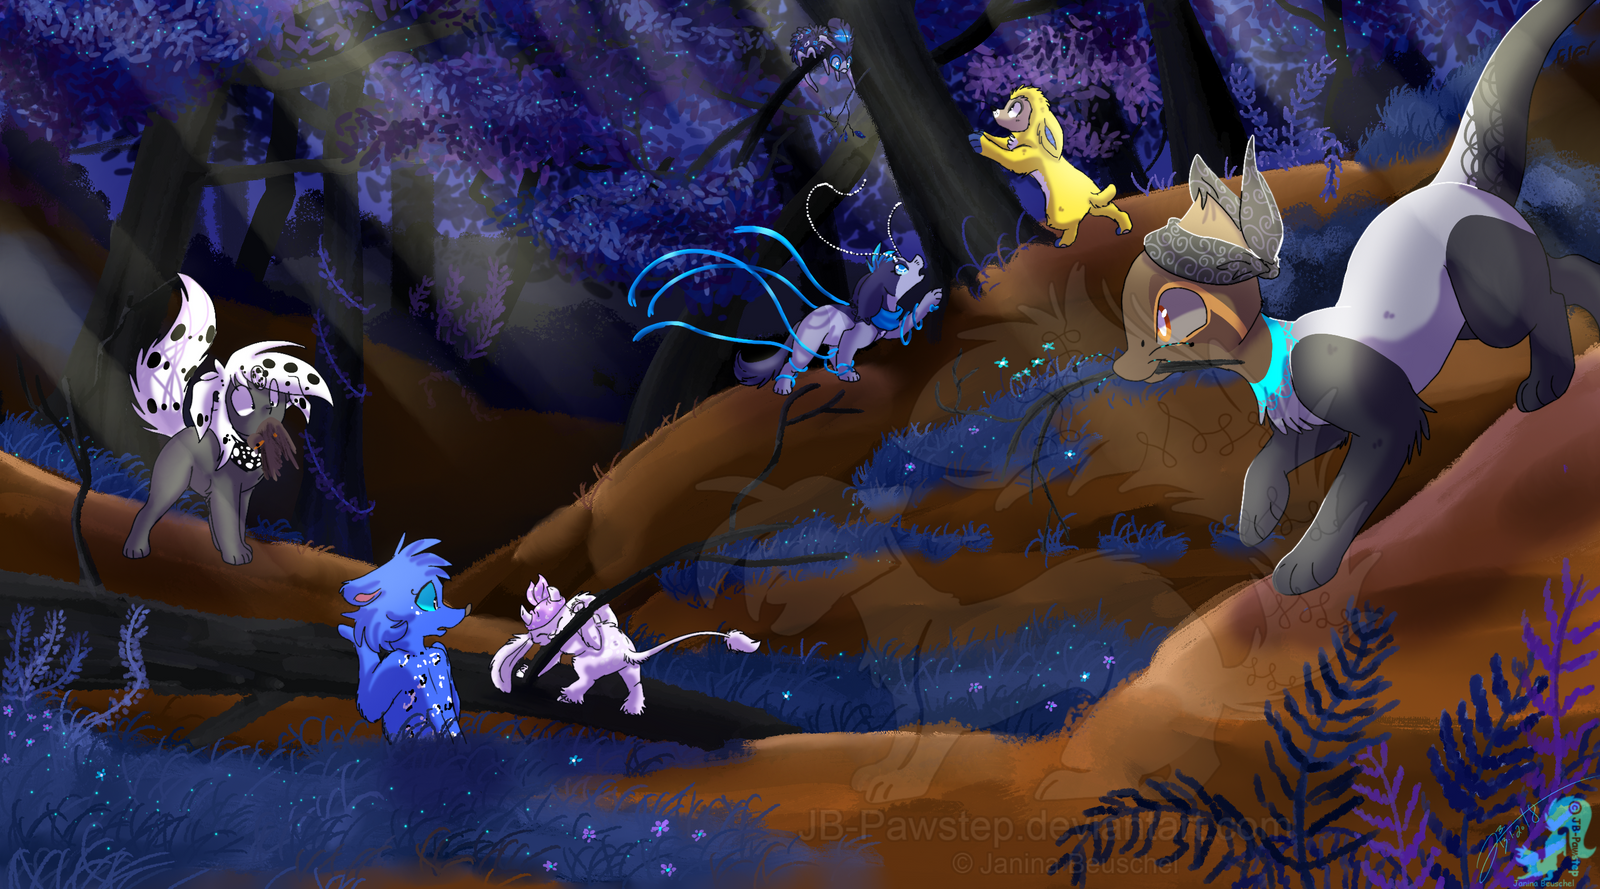 Busy Morning in Twilight Wood by JB-Pawstep